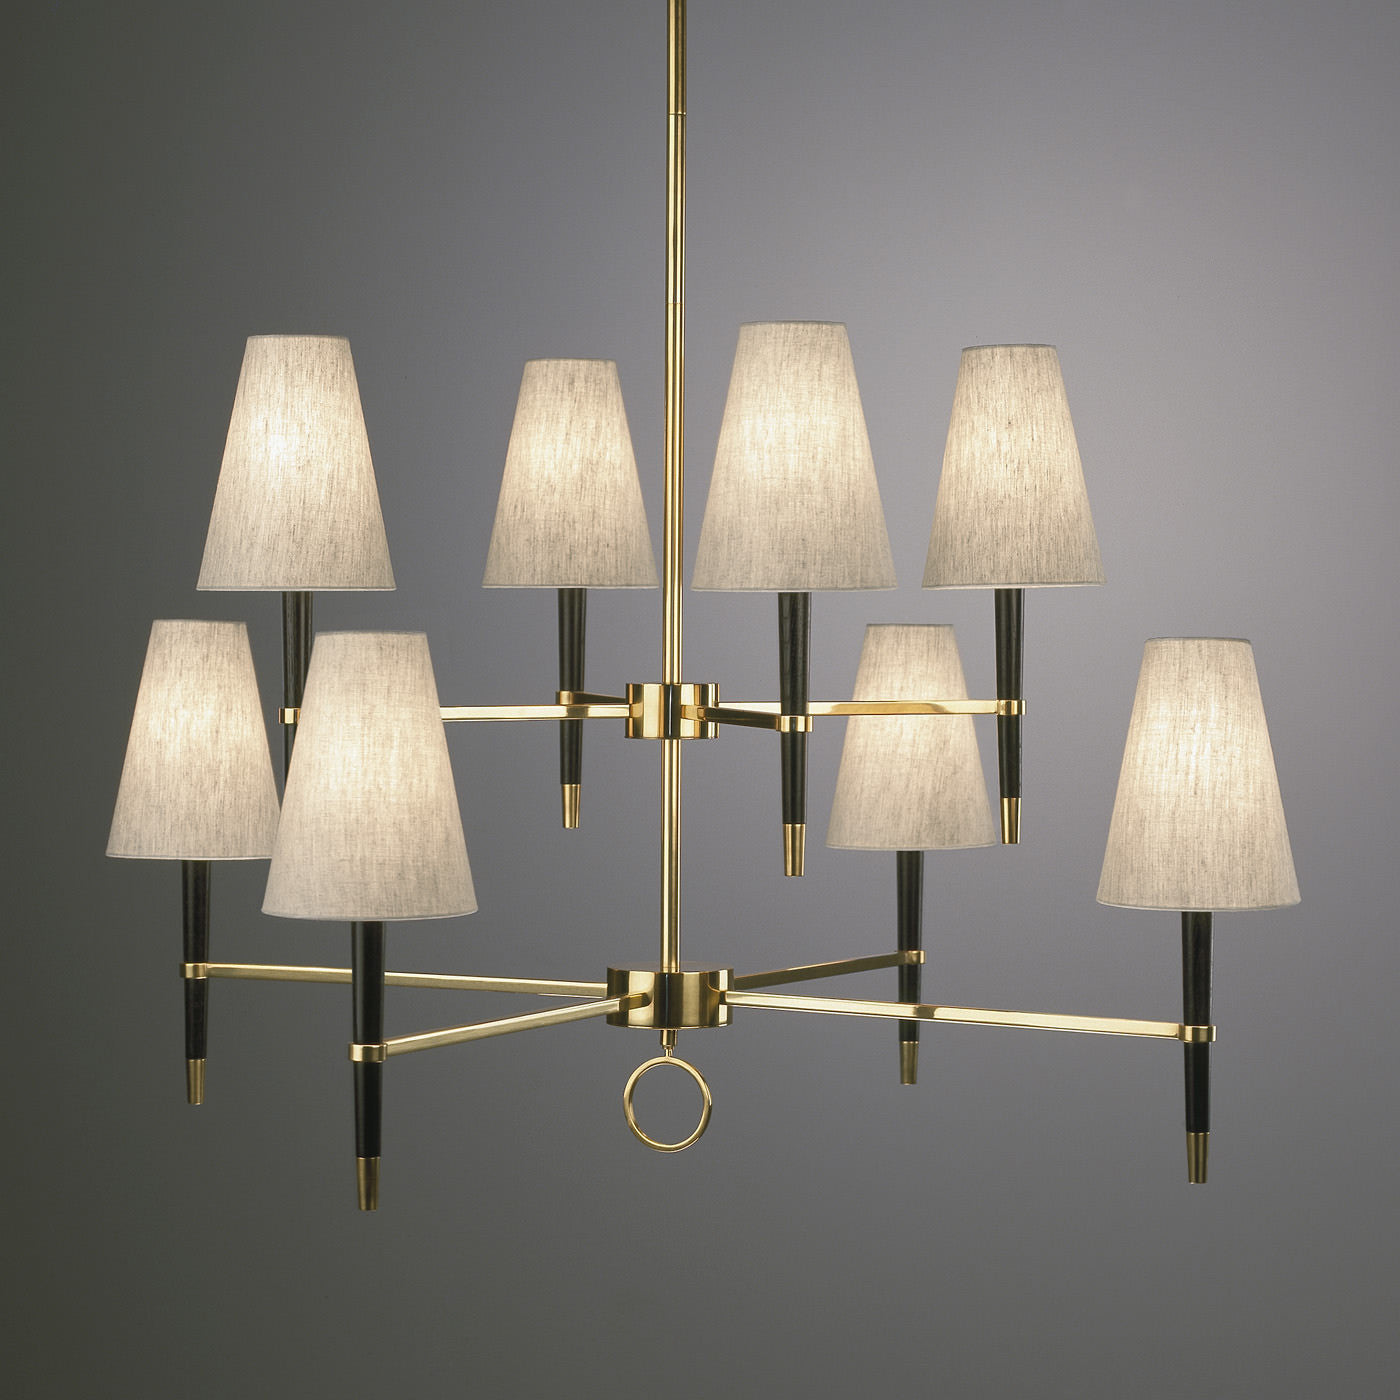 Jonathan Adler presents the Ventana Two-Tier Chandelier